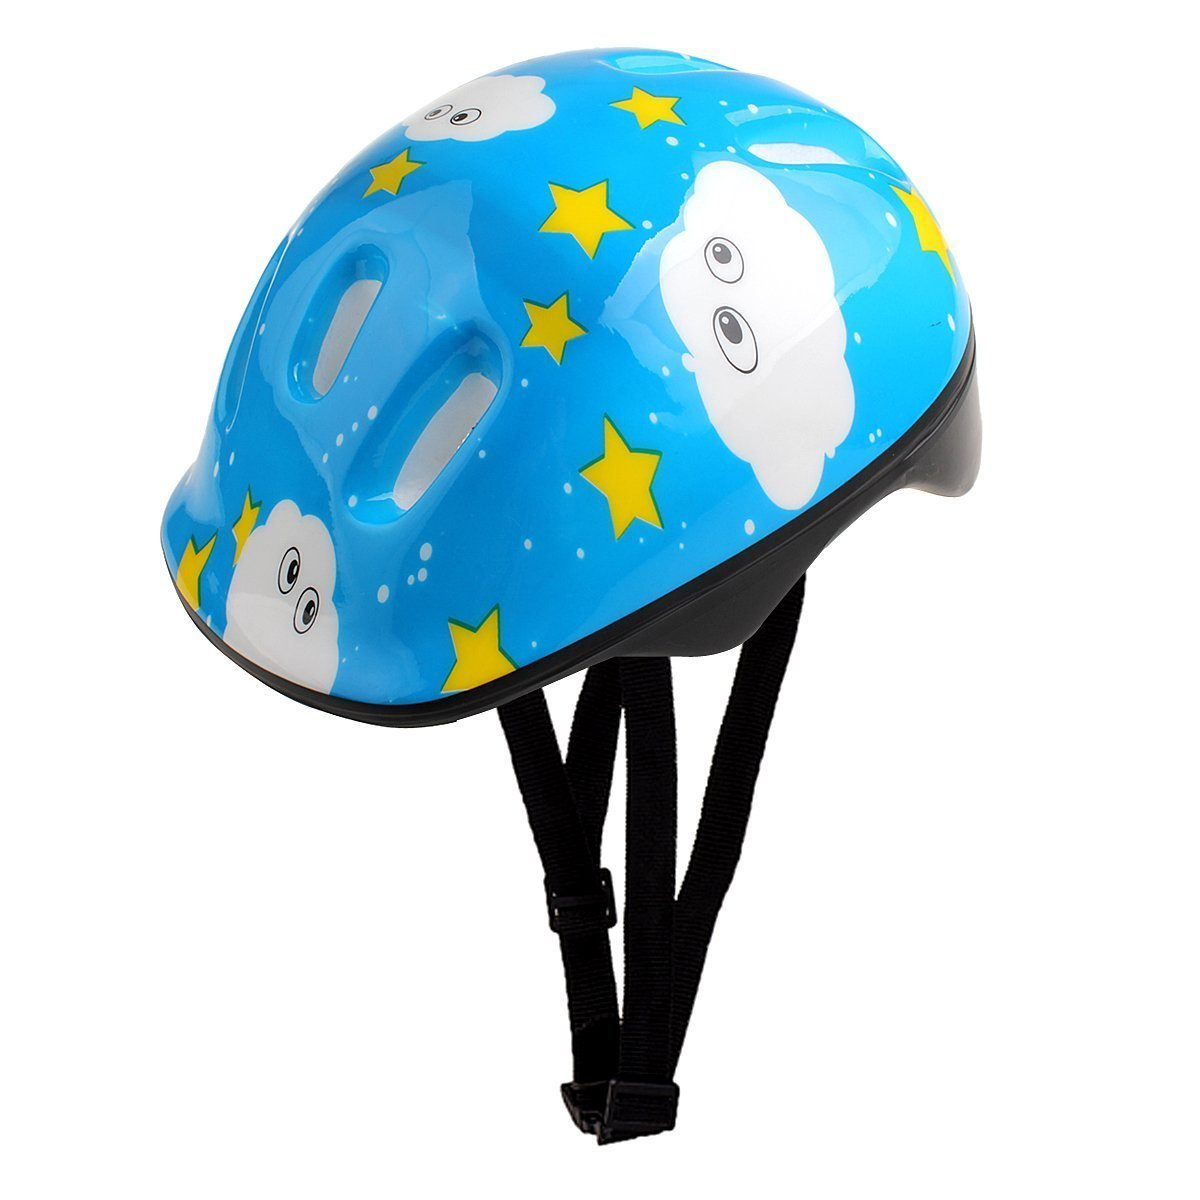 Northexplorer Bicycle Helmets